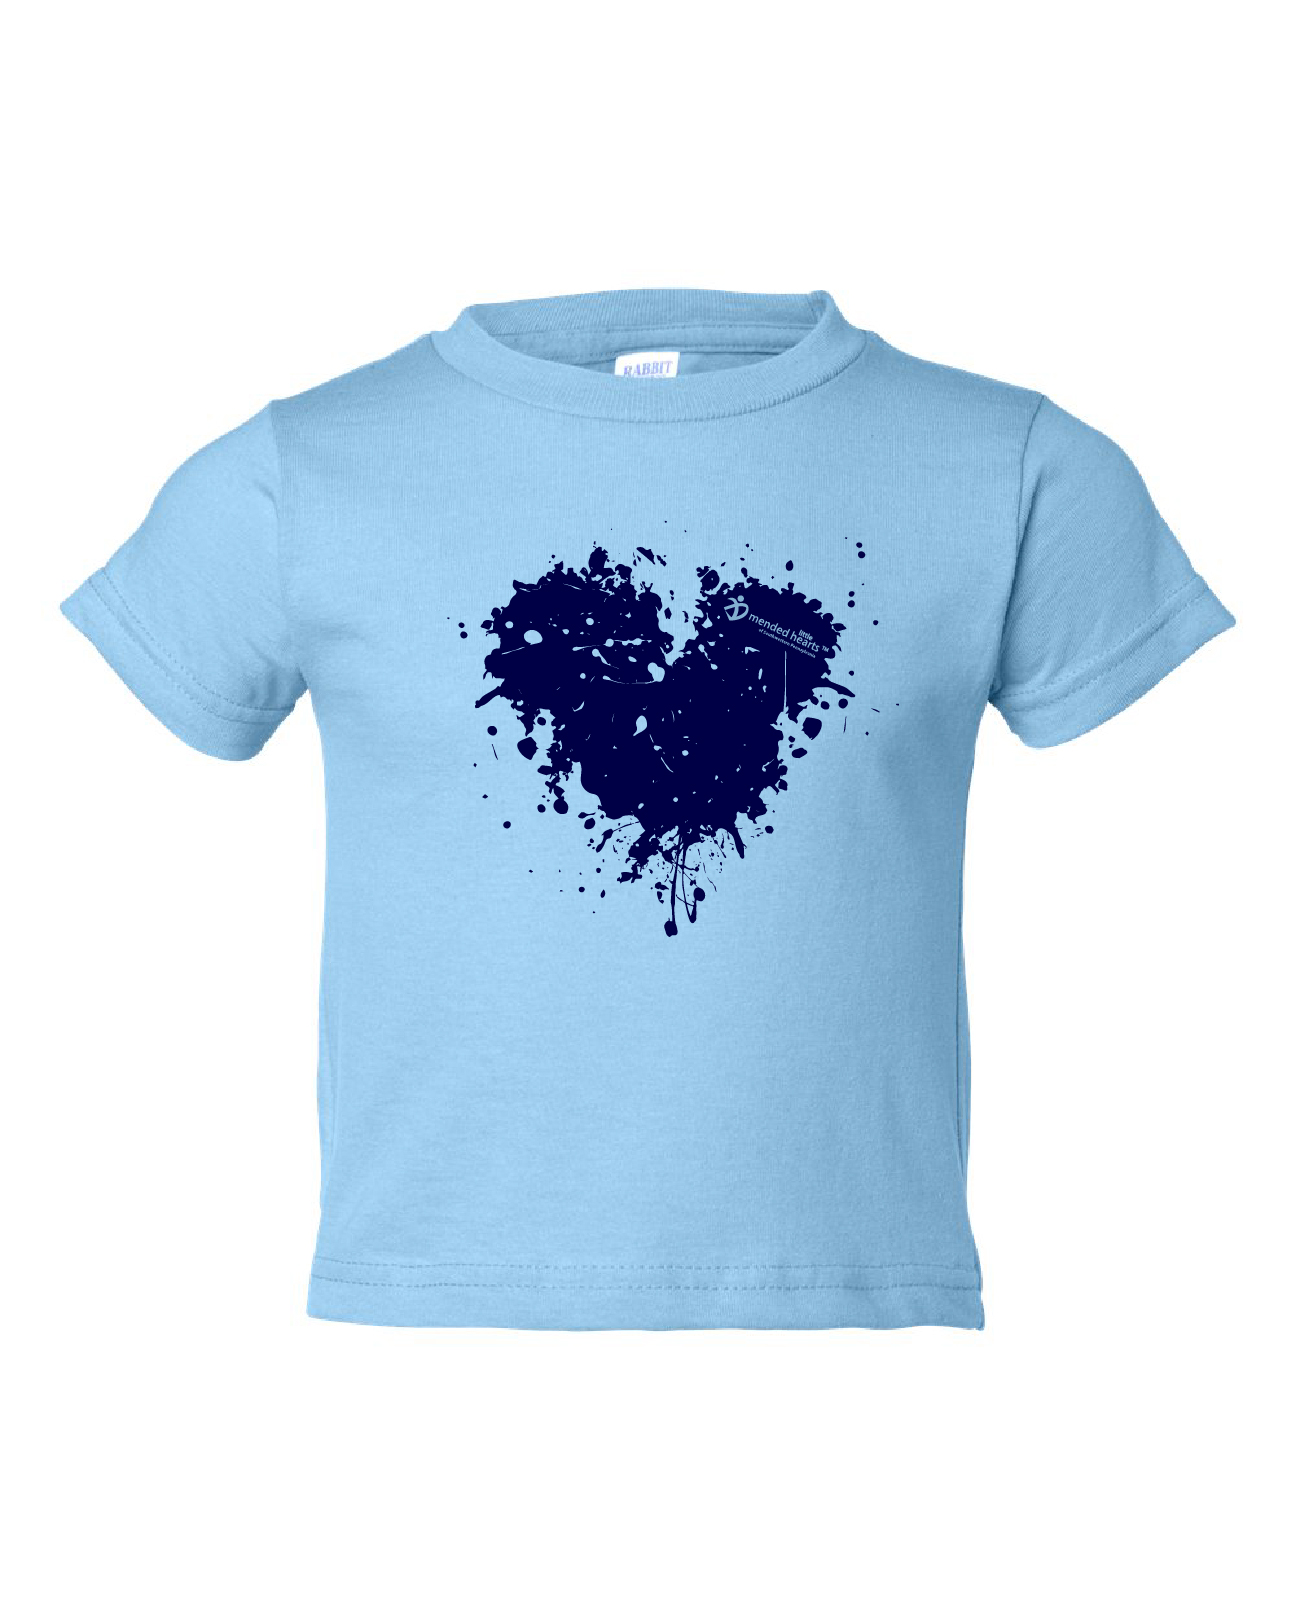 Splatter Heart Toddler Shirts Available in Multiple Colors